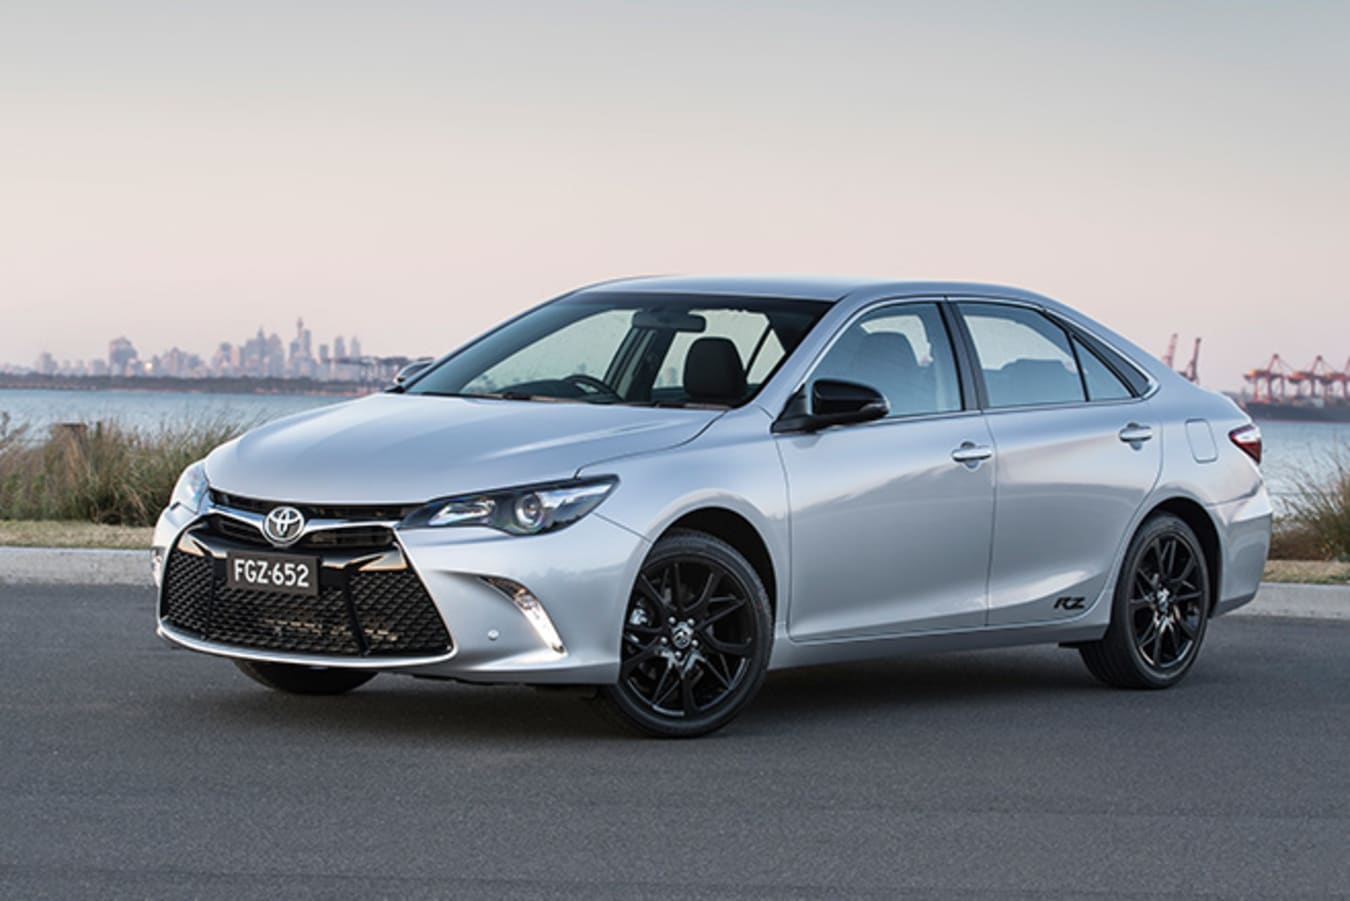 Toyota Camry Rz Front Side Jpg